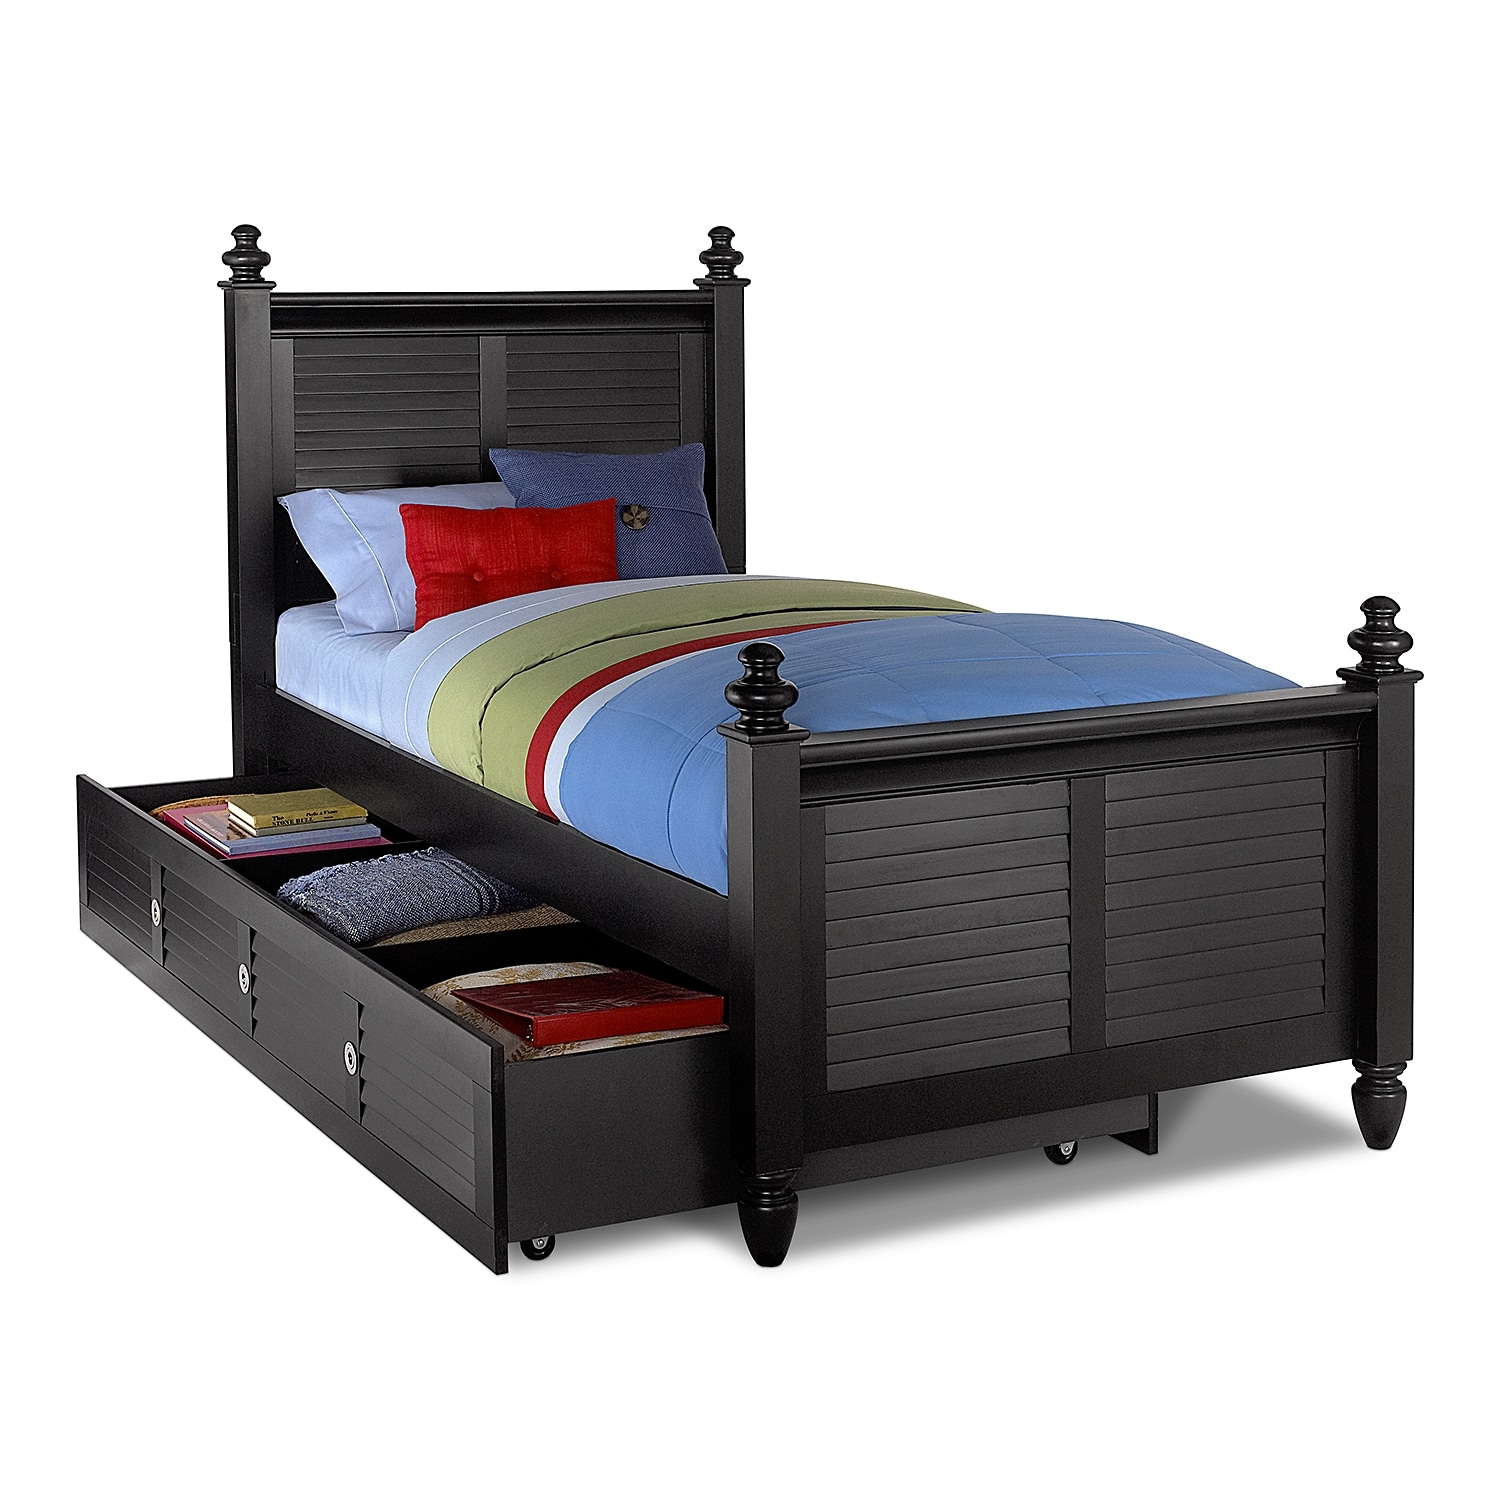 Kids Furniture - Seaside Full Bed with Trundle - Black